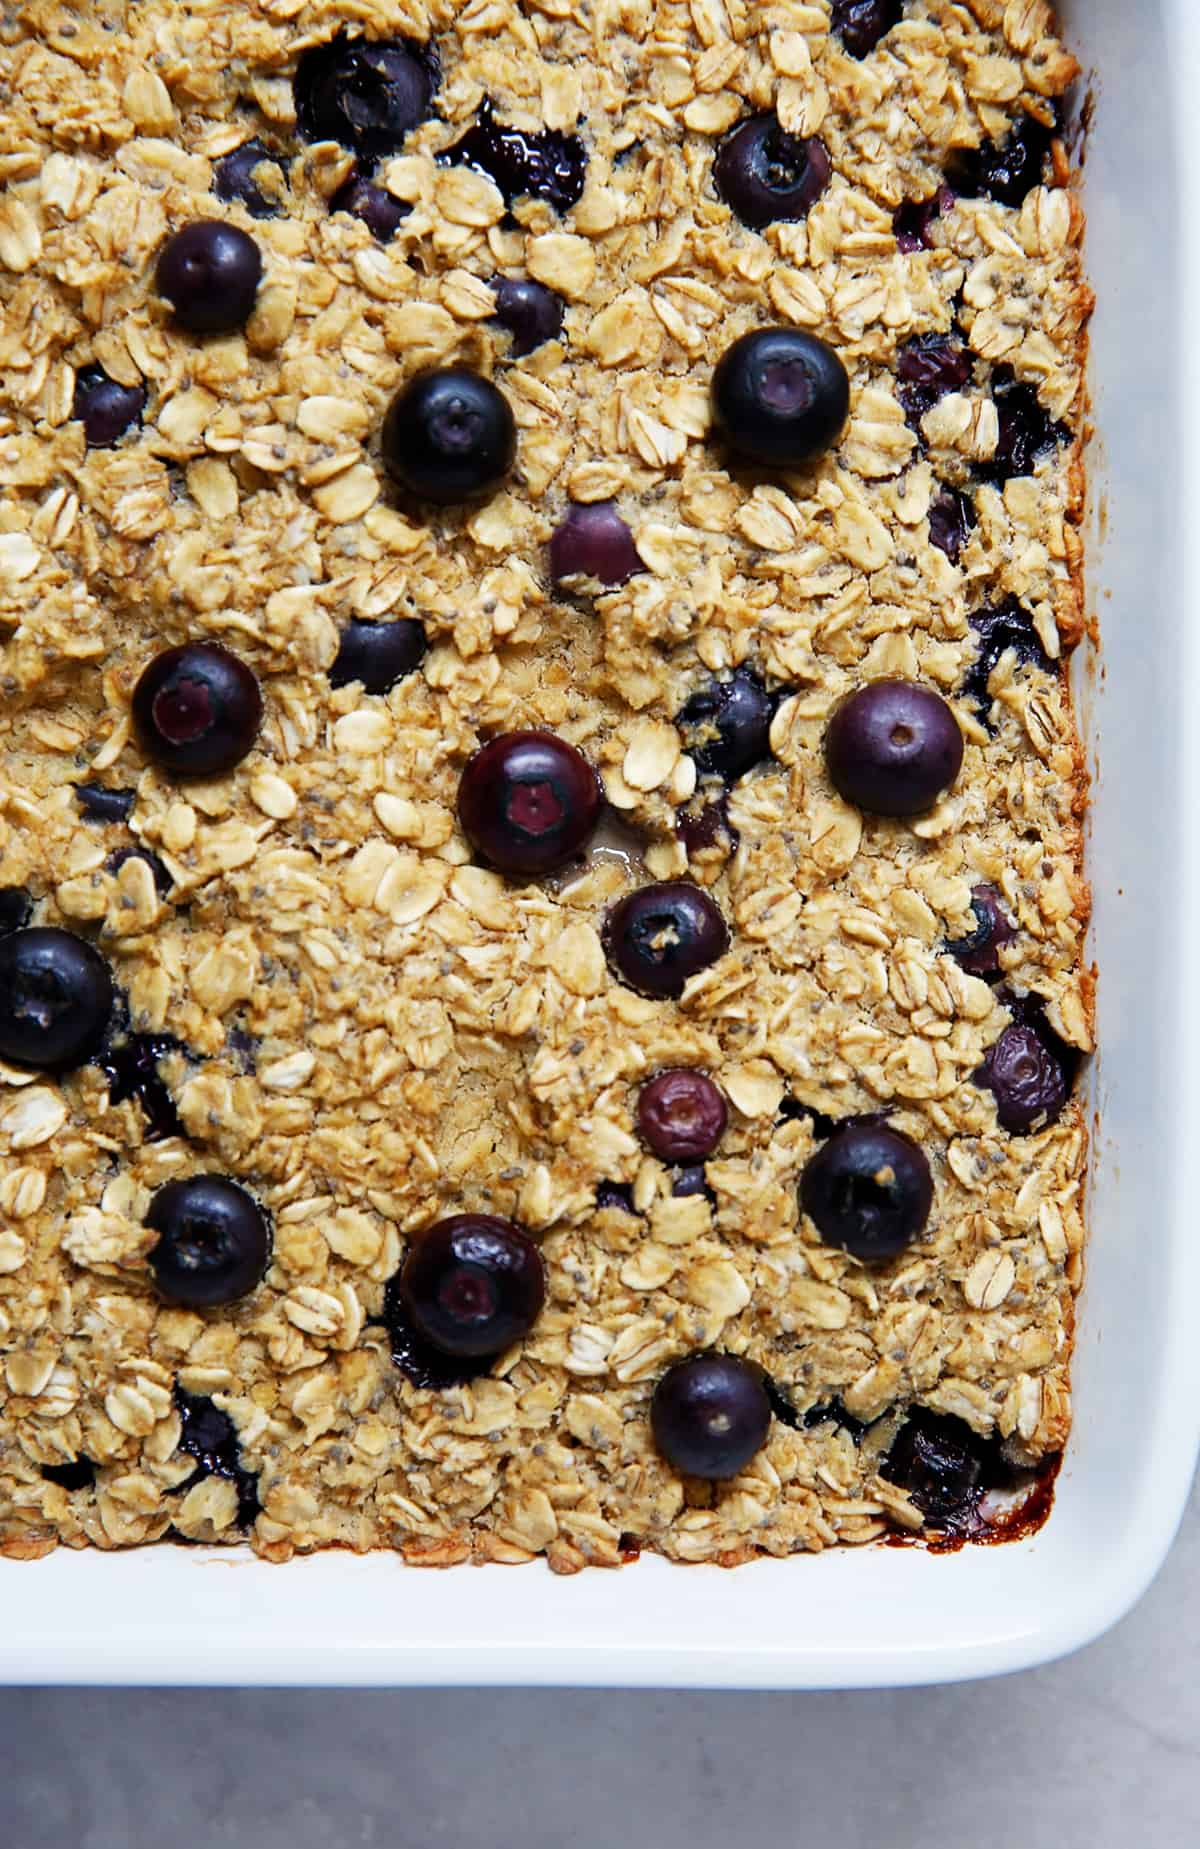 Maple Blueberry Baked Oatmeal